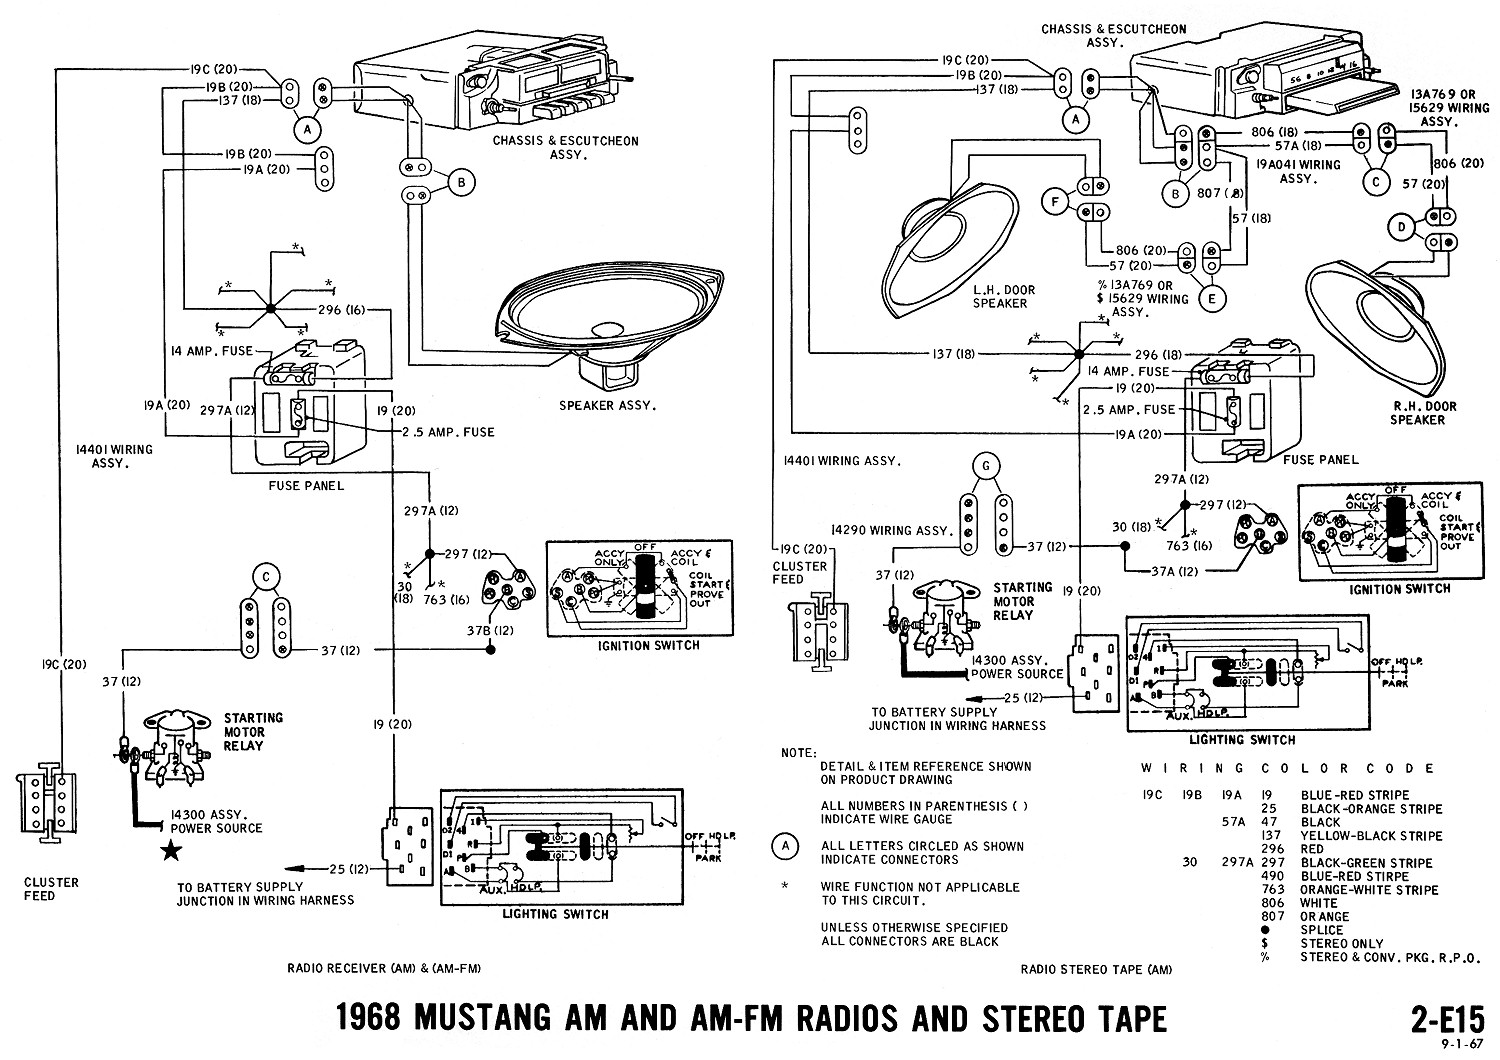 E15 2000 mustang v6 radio wiring diagram efcaviation com 2004 mustang mach stereo wiring diagram at creativeand.co